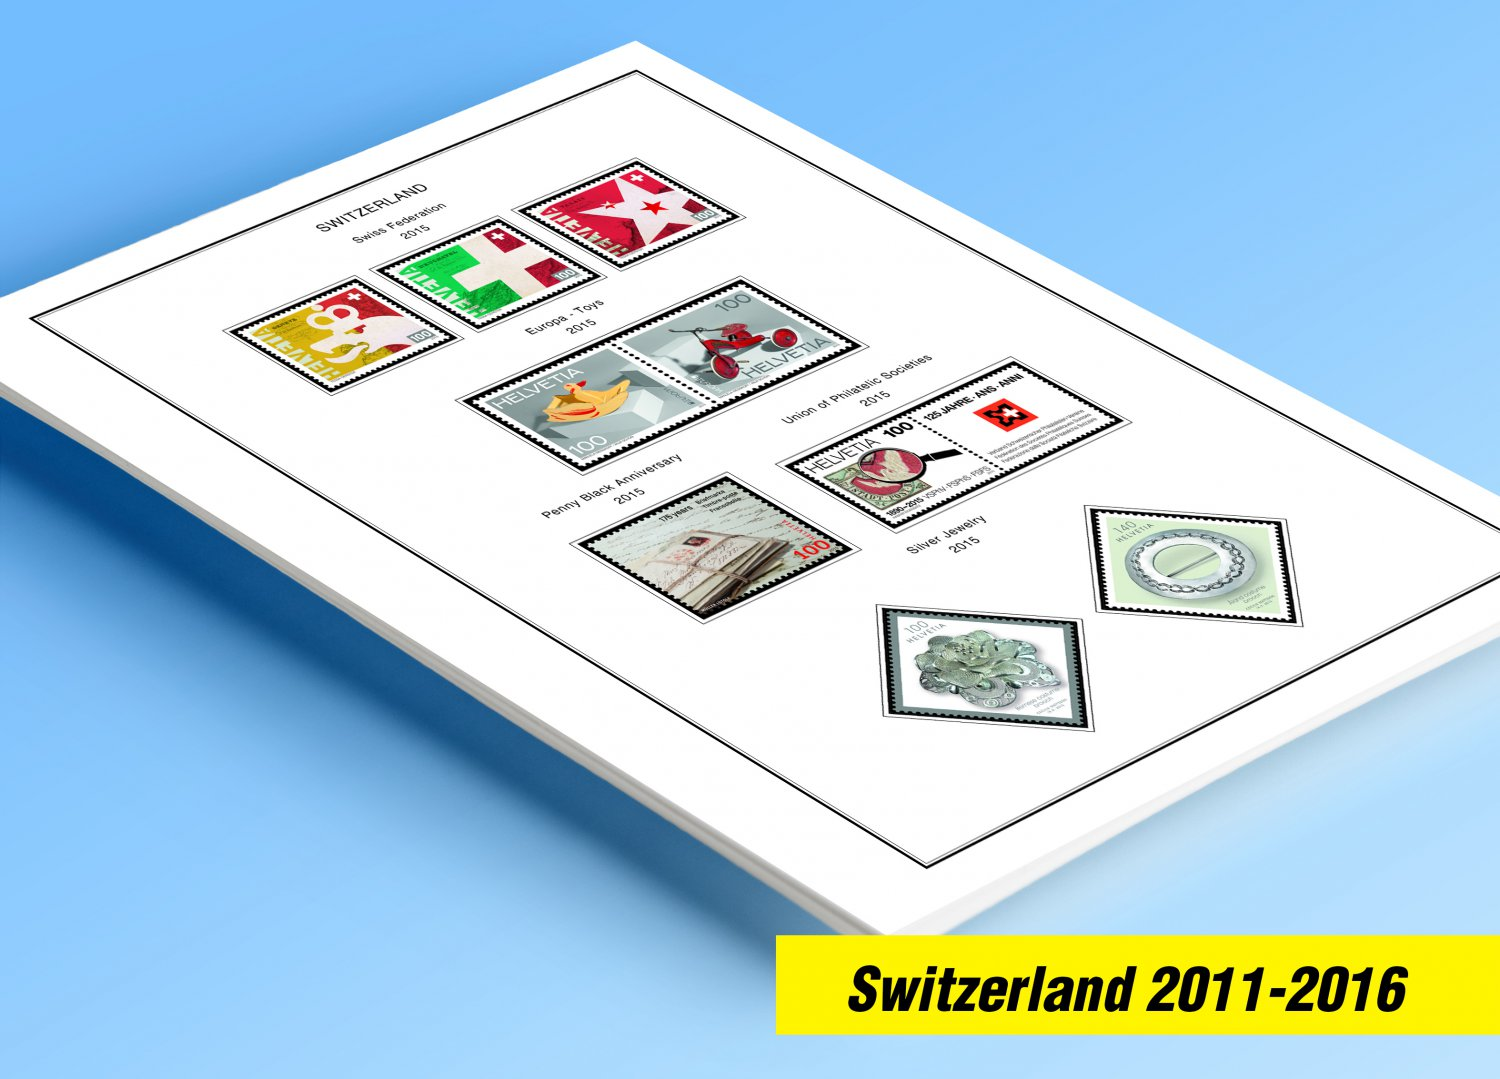 COLOR PRINTED SWITZERLAND 2011-2016 STAMP ALBUM PAGES (37 illustrated pages)